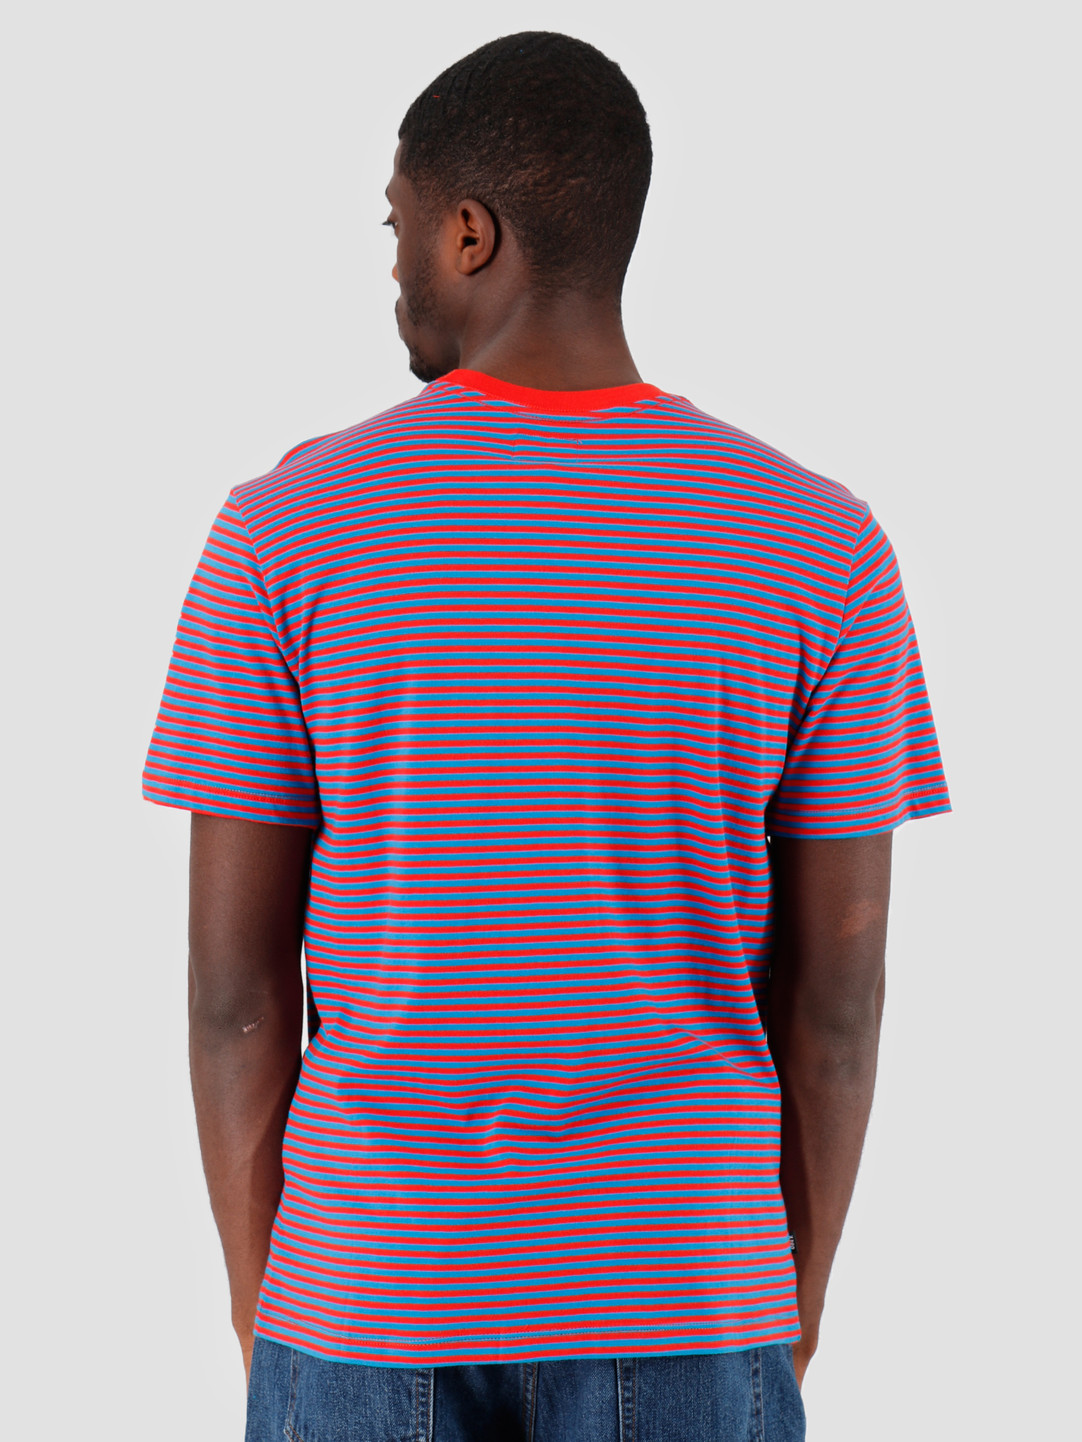 Obey Obey Apex T-Shirt Adernaline Multi 131080182-ADE